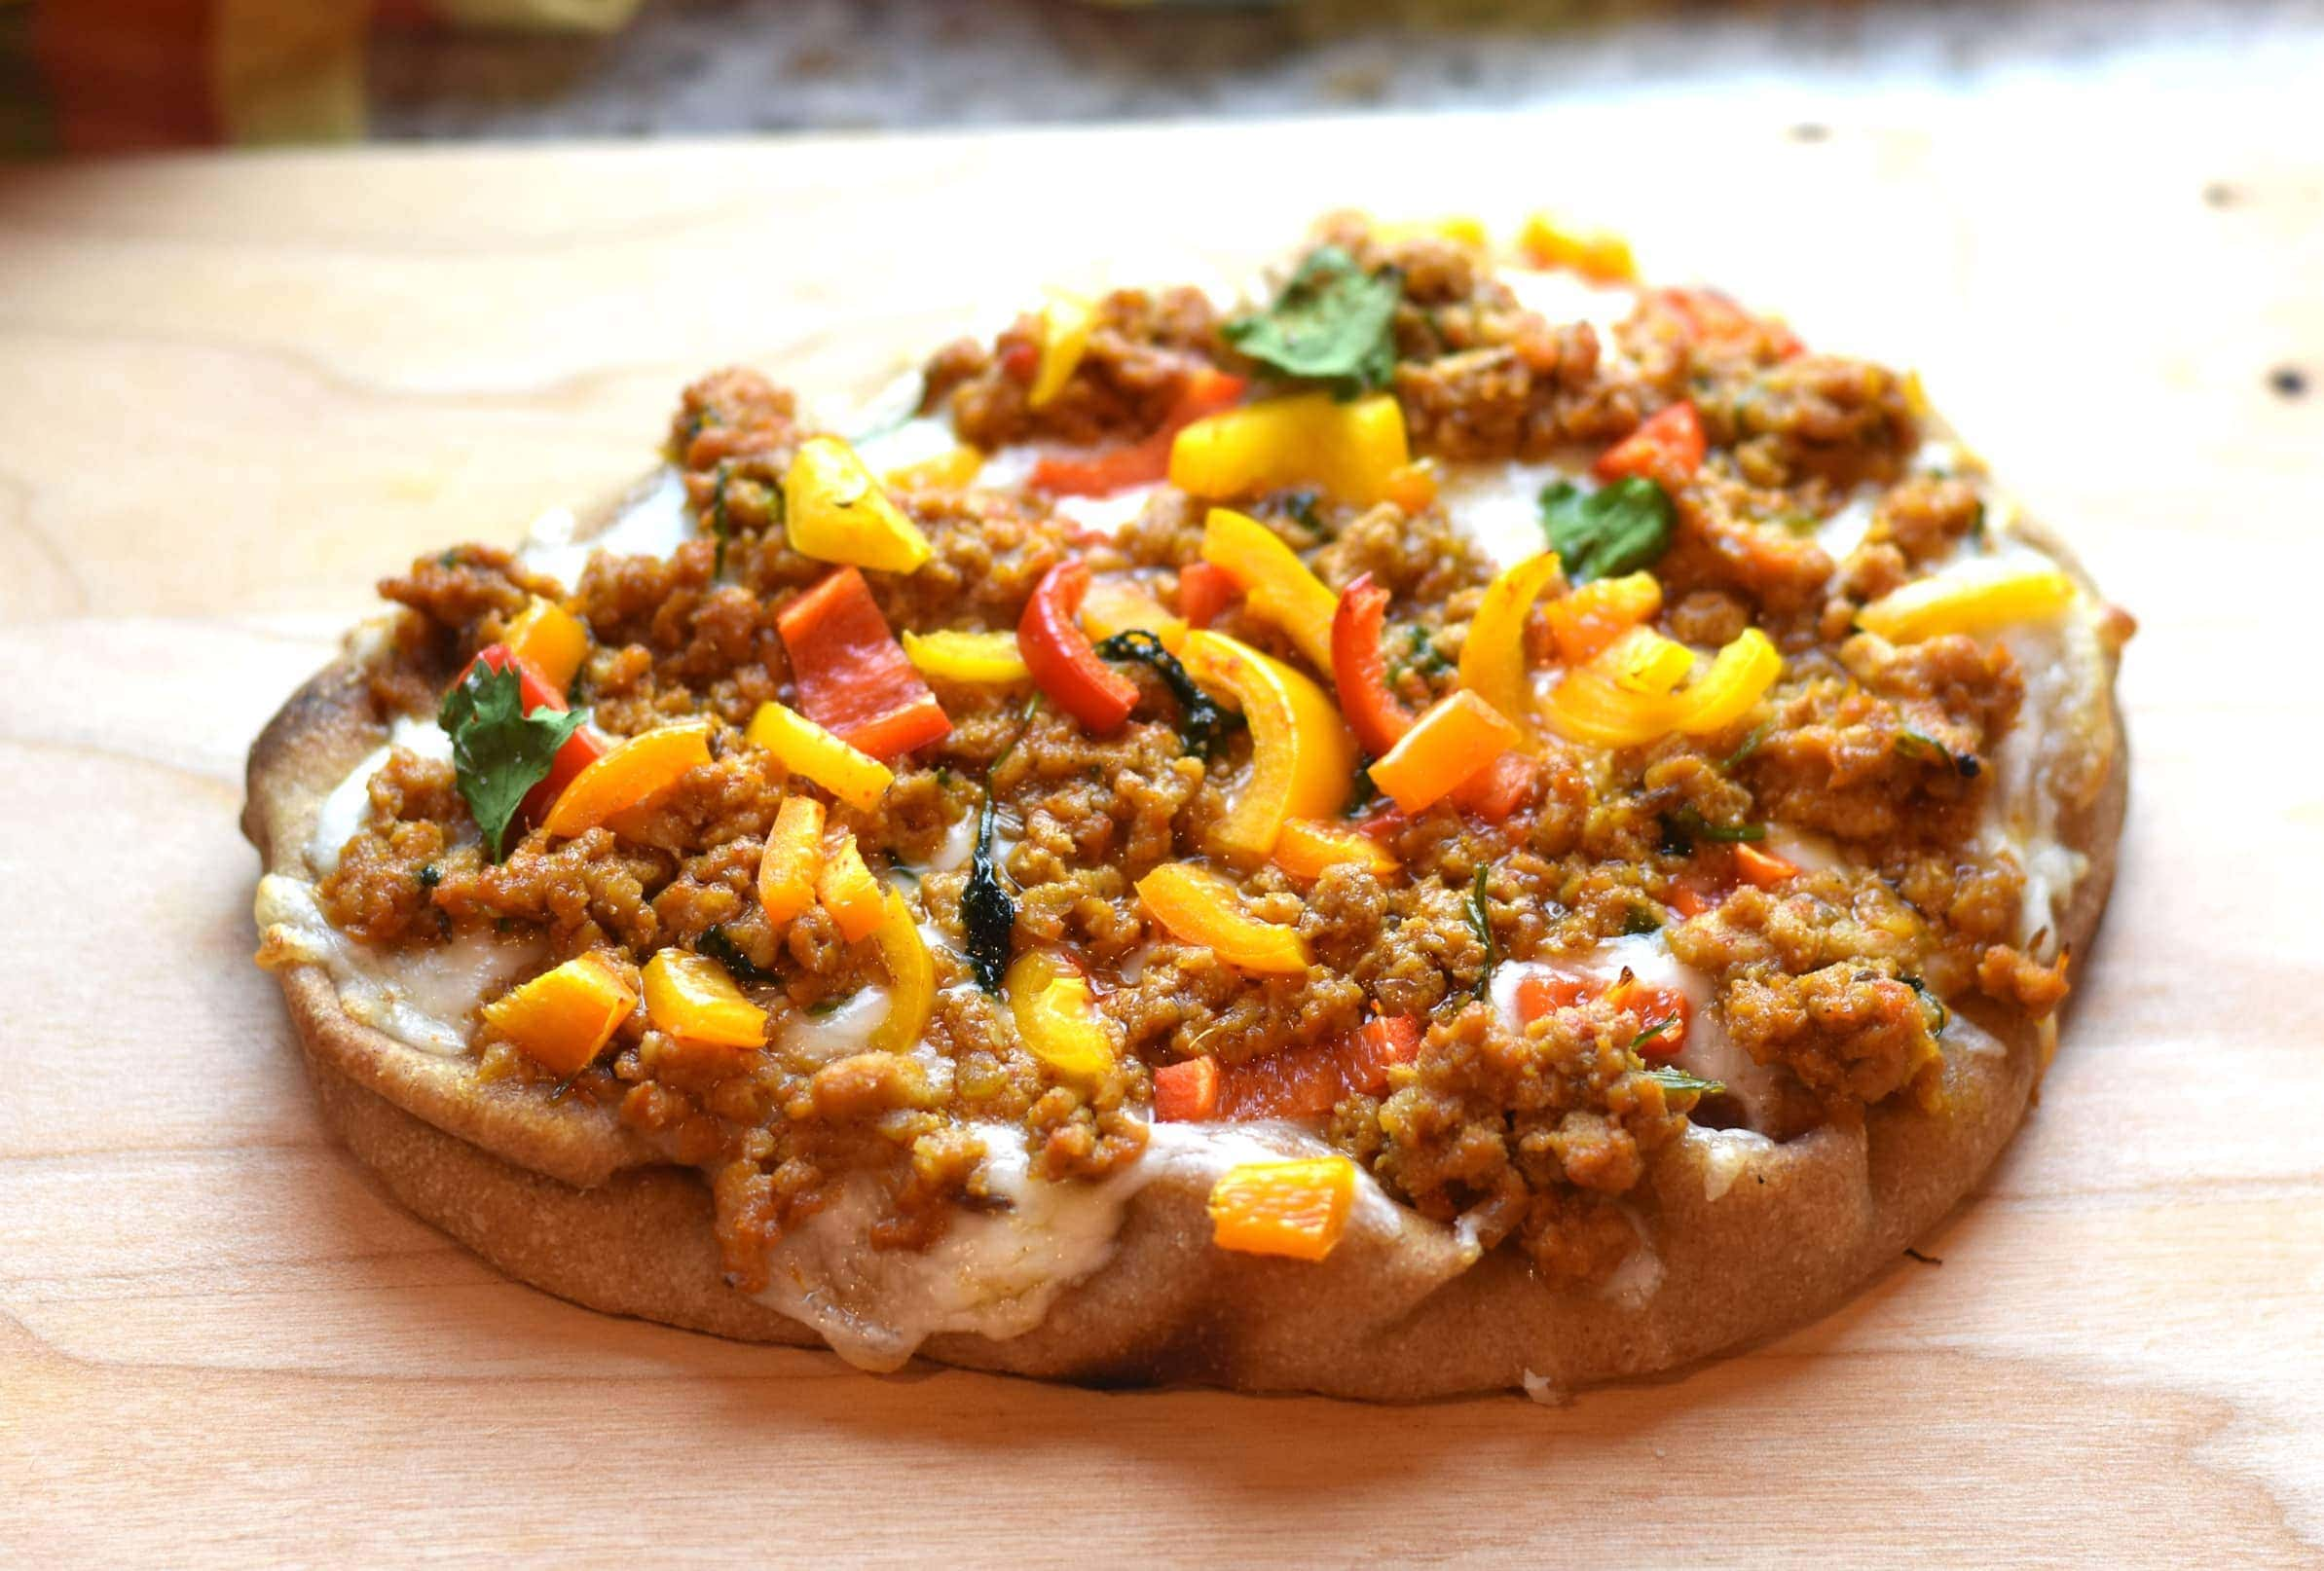 Indian Spiced Naan Pizza served on a wooden cheeseboard